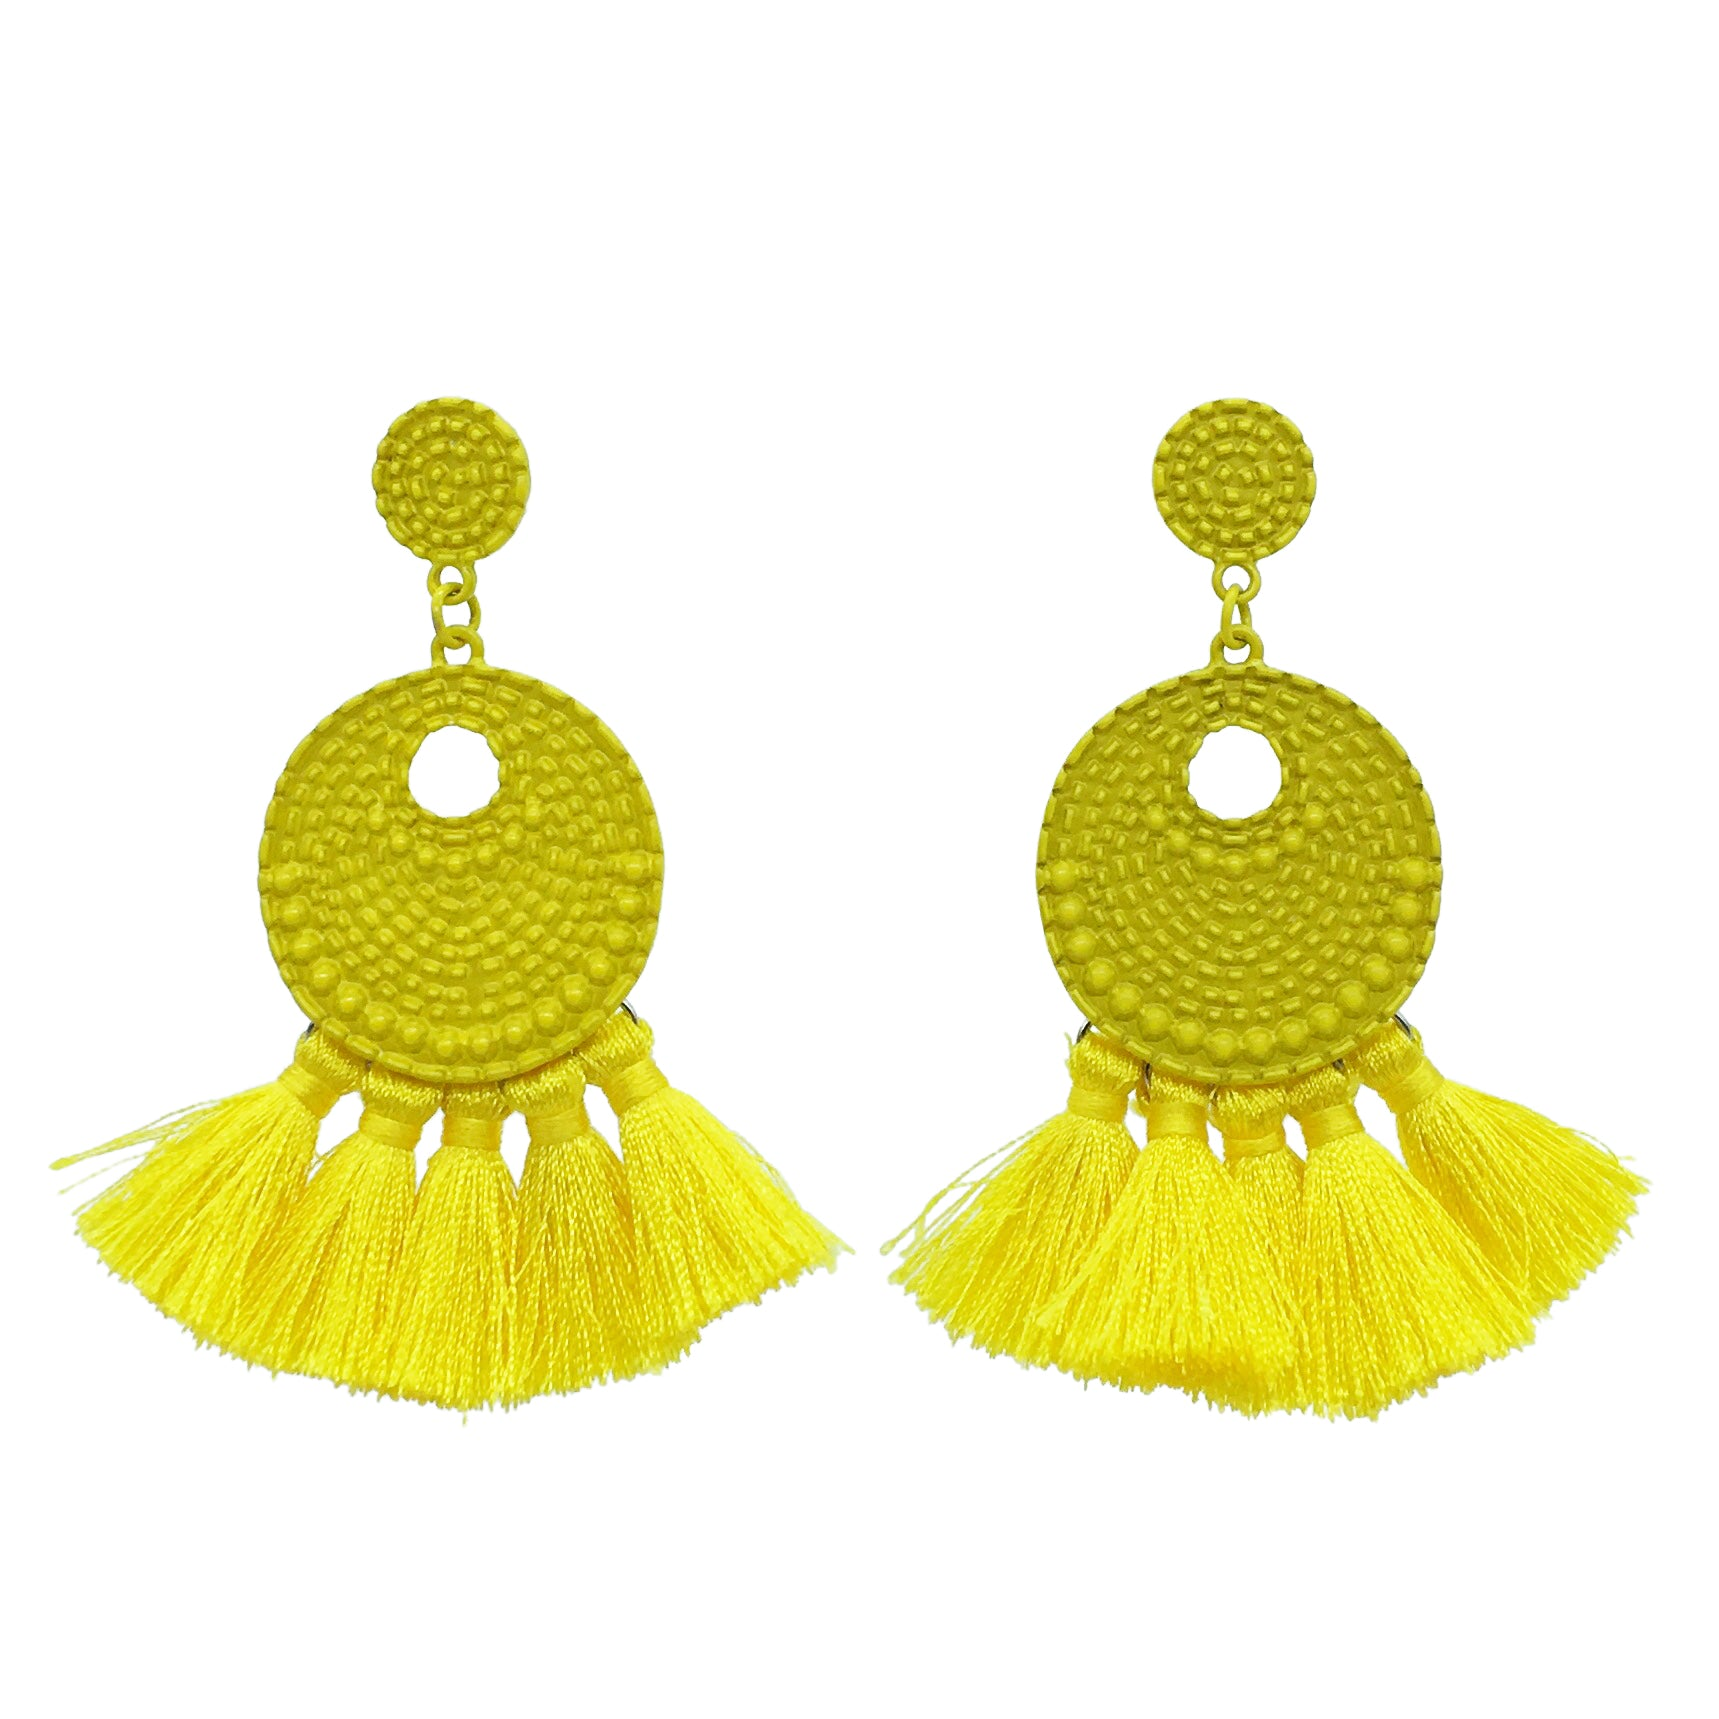 Mimi tassel Earring - Yellow